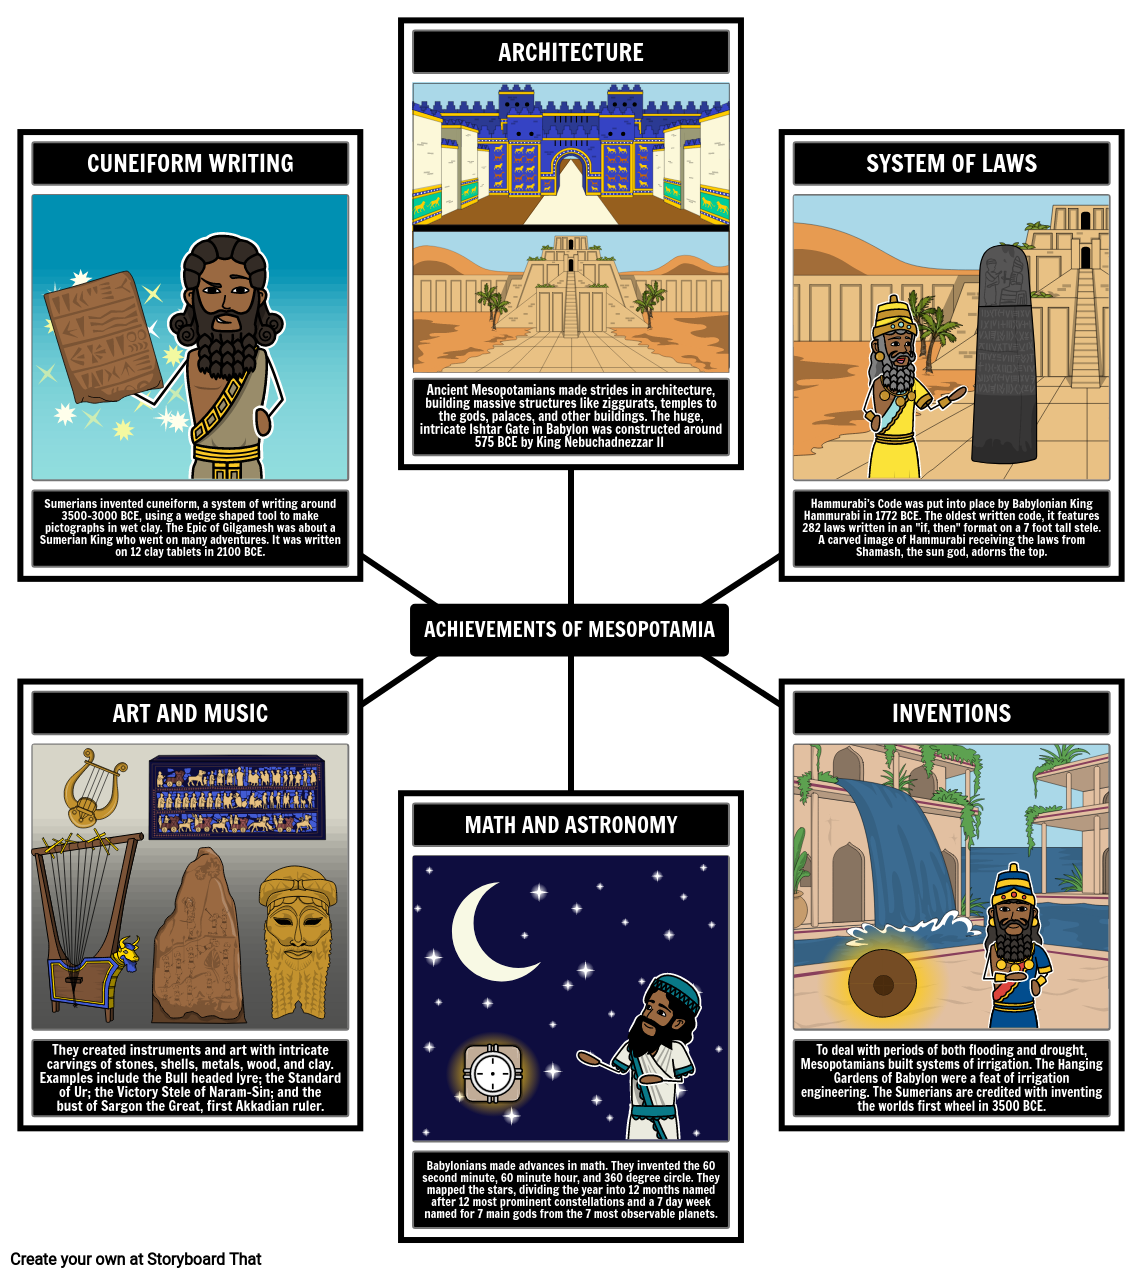 Mesopotamia Achievements